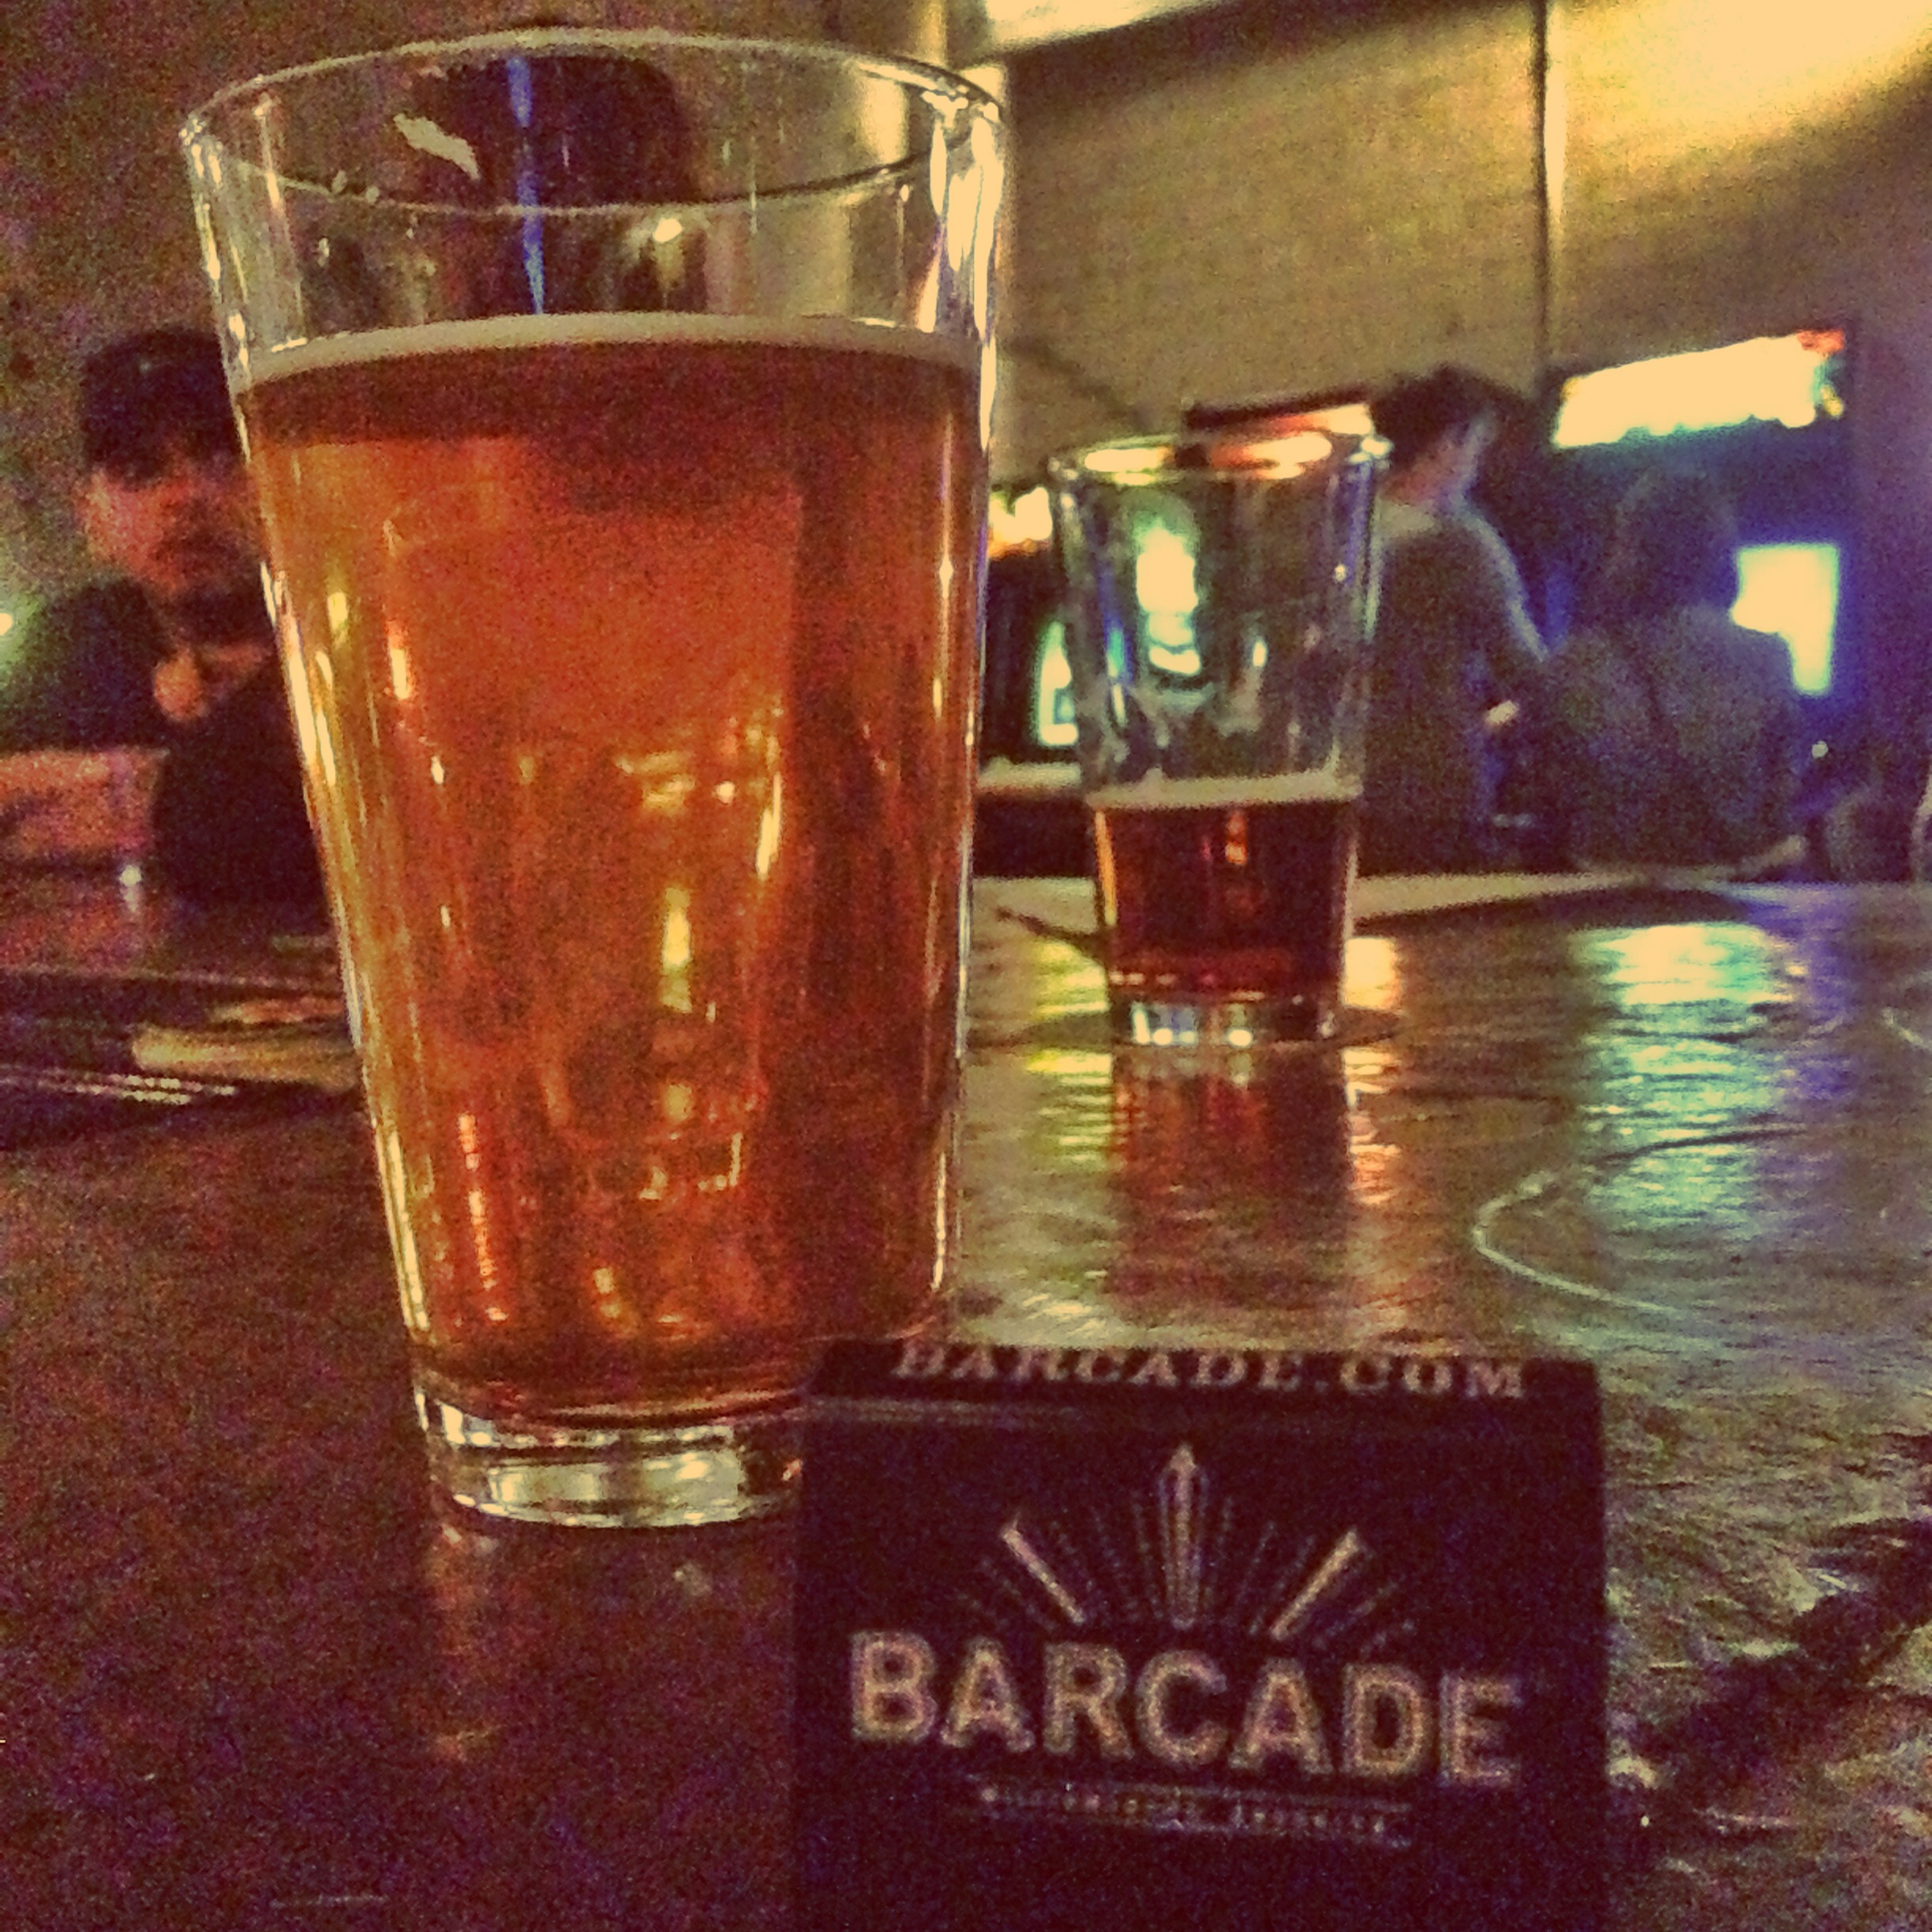 """Barcade in New York City. """"Barcade"""" has also become a term for establishments that feature alcohol and videogames as adult leisure spots."""